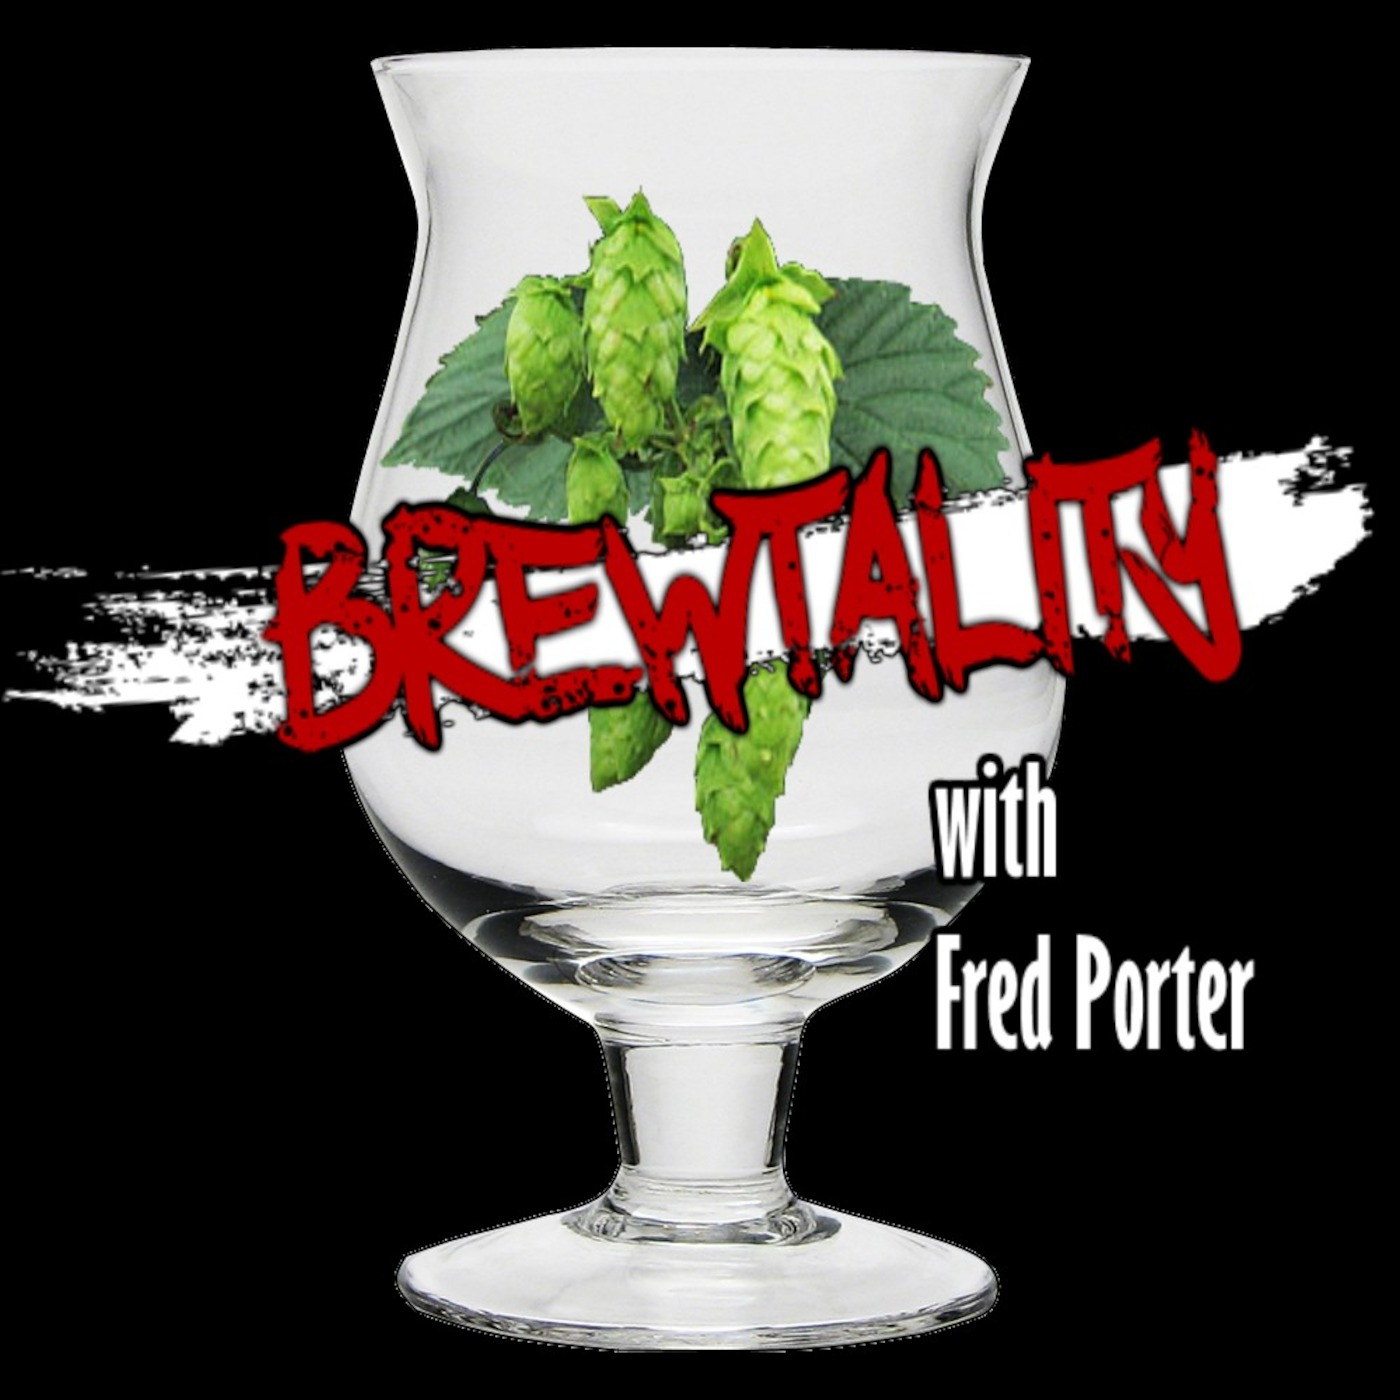 Brewtality with Fred Porter